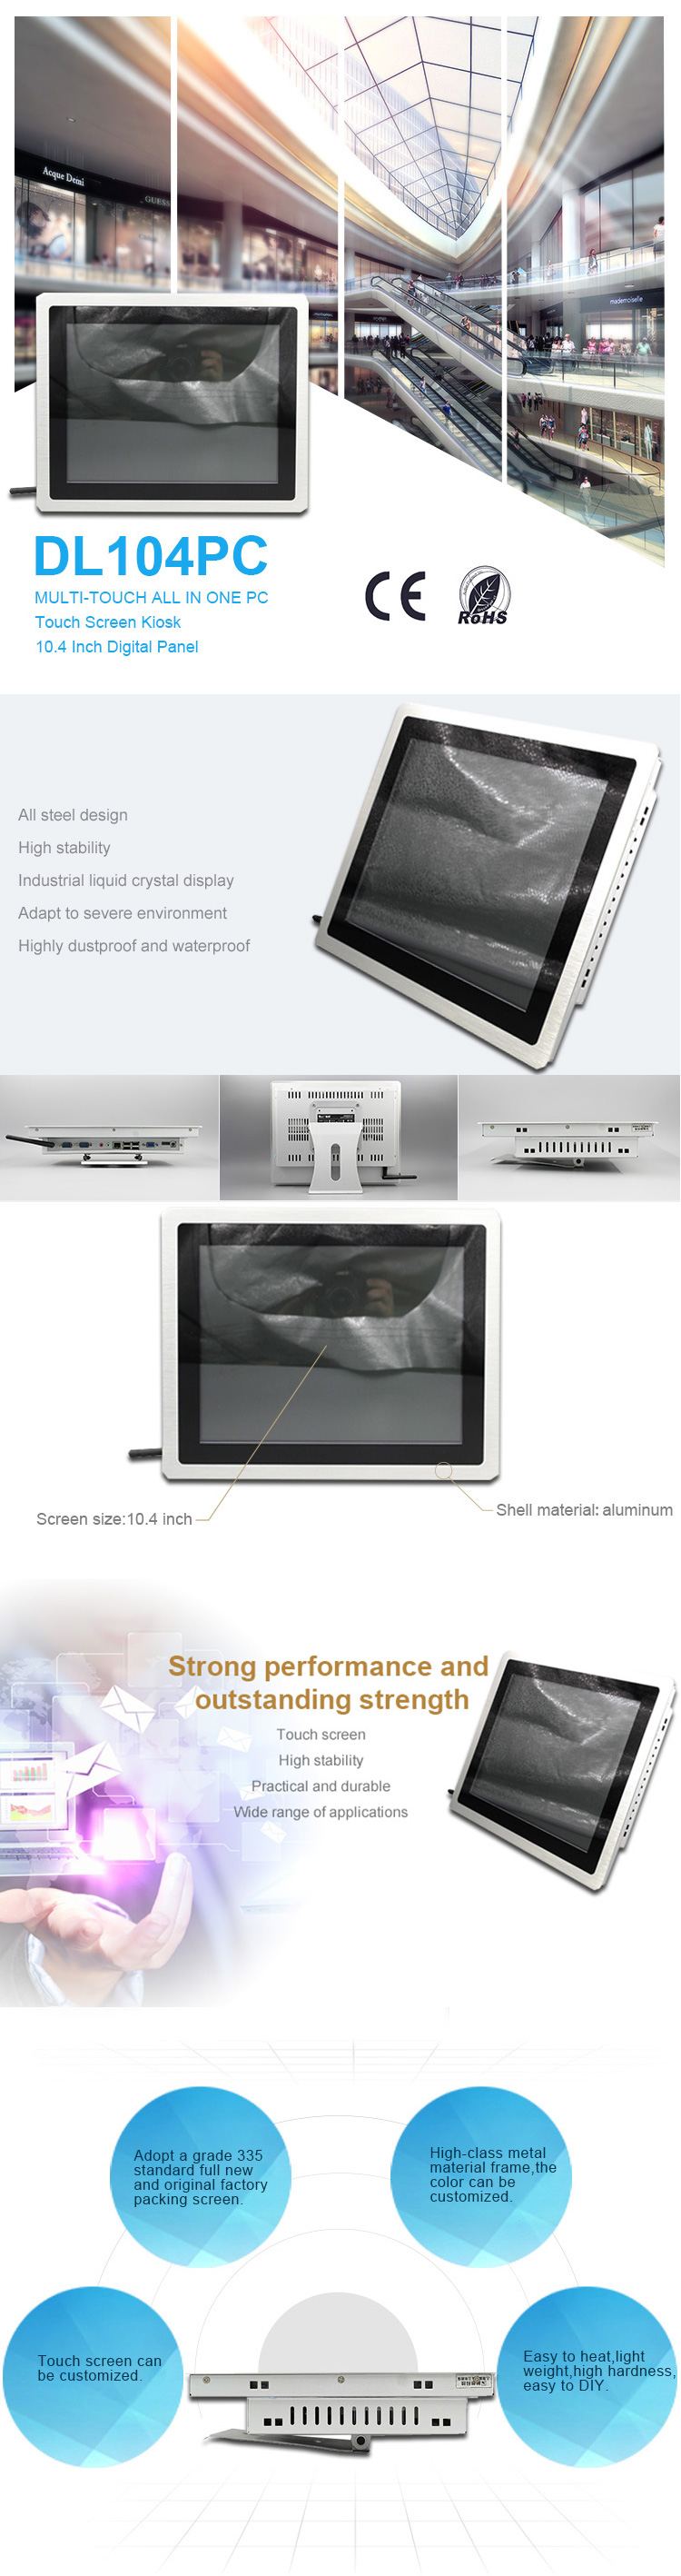 Low price wireless 2.0Ghz multi-touch silver industrial all in one pc with built in wifi